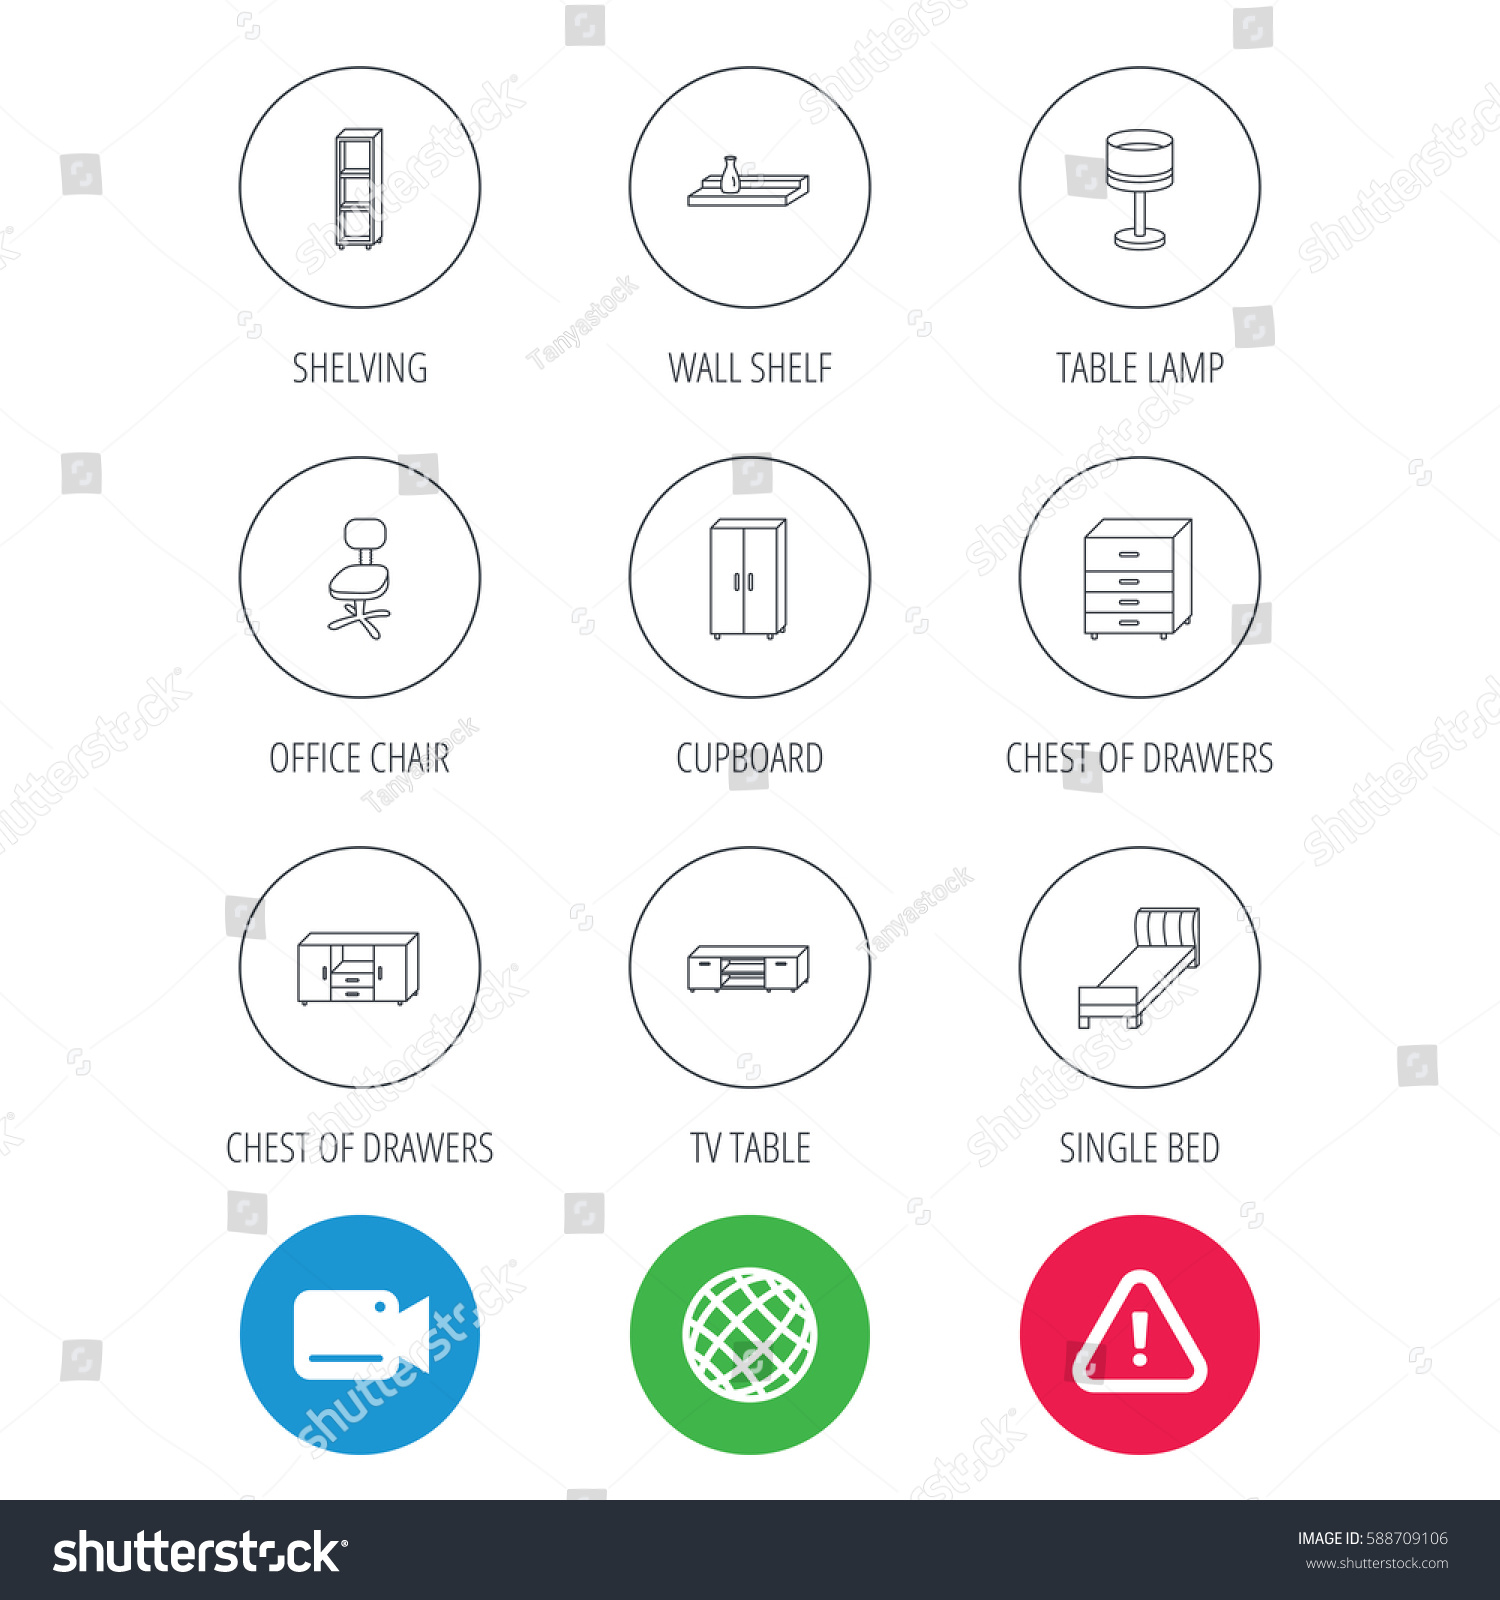 Single bed tv table shelving icons stock illustration 588709106 single bed tv table and shelving icons office chair table lamp and cupboard geotapseo Gallery